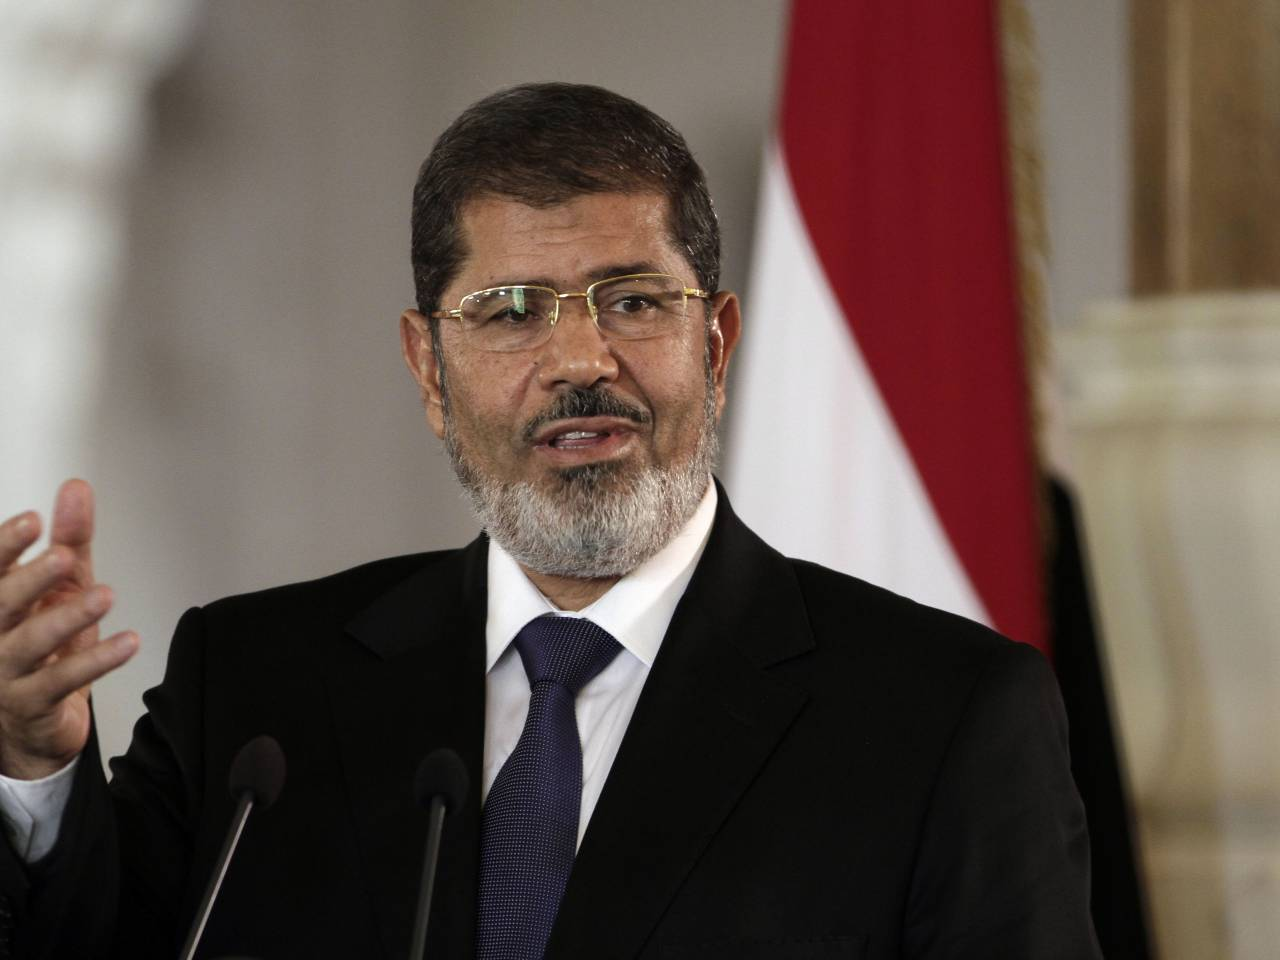 Who's the real Mohamed Morsi? - Salon.com